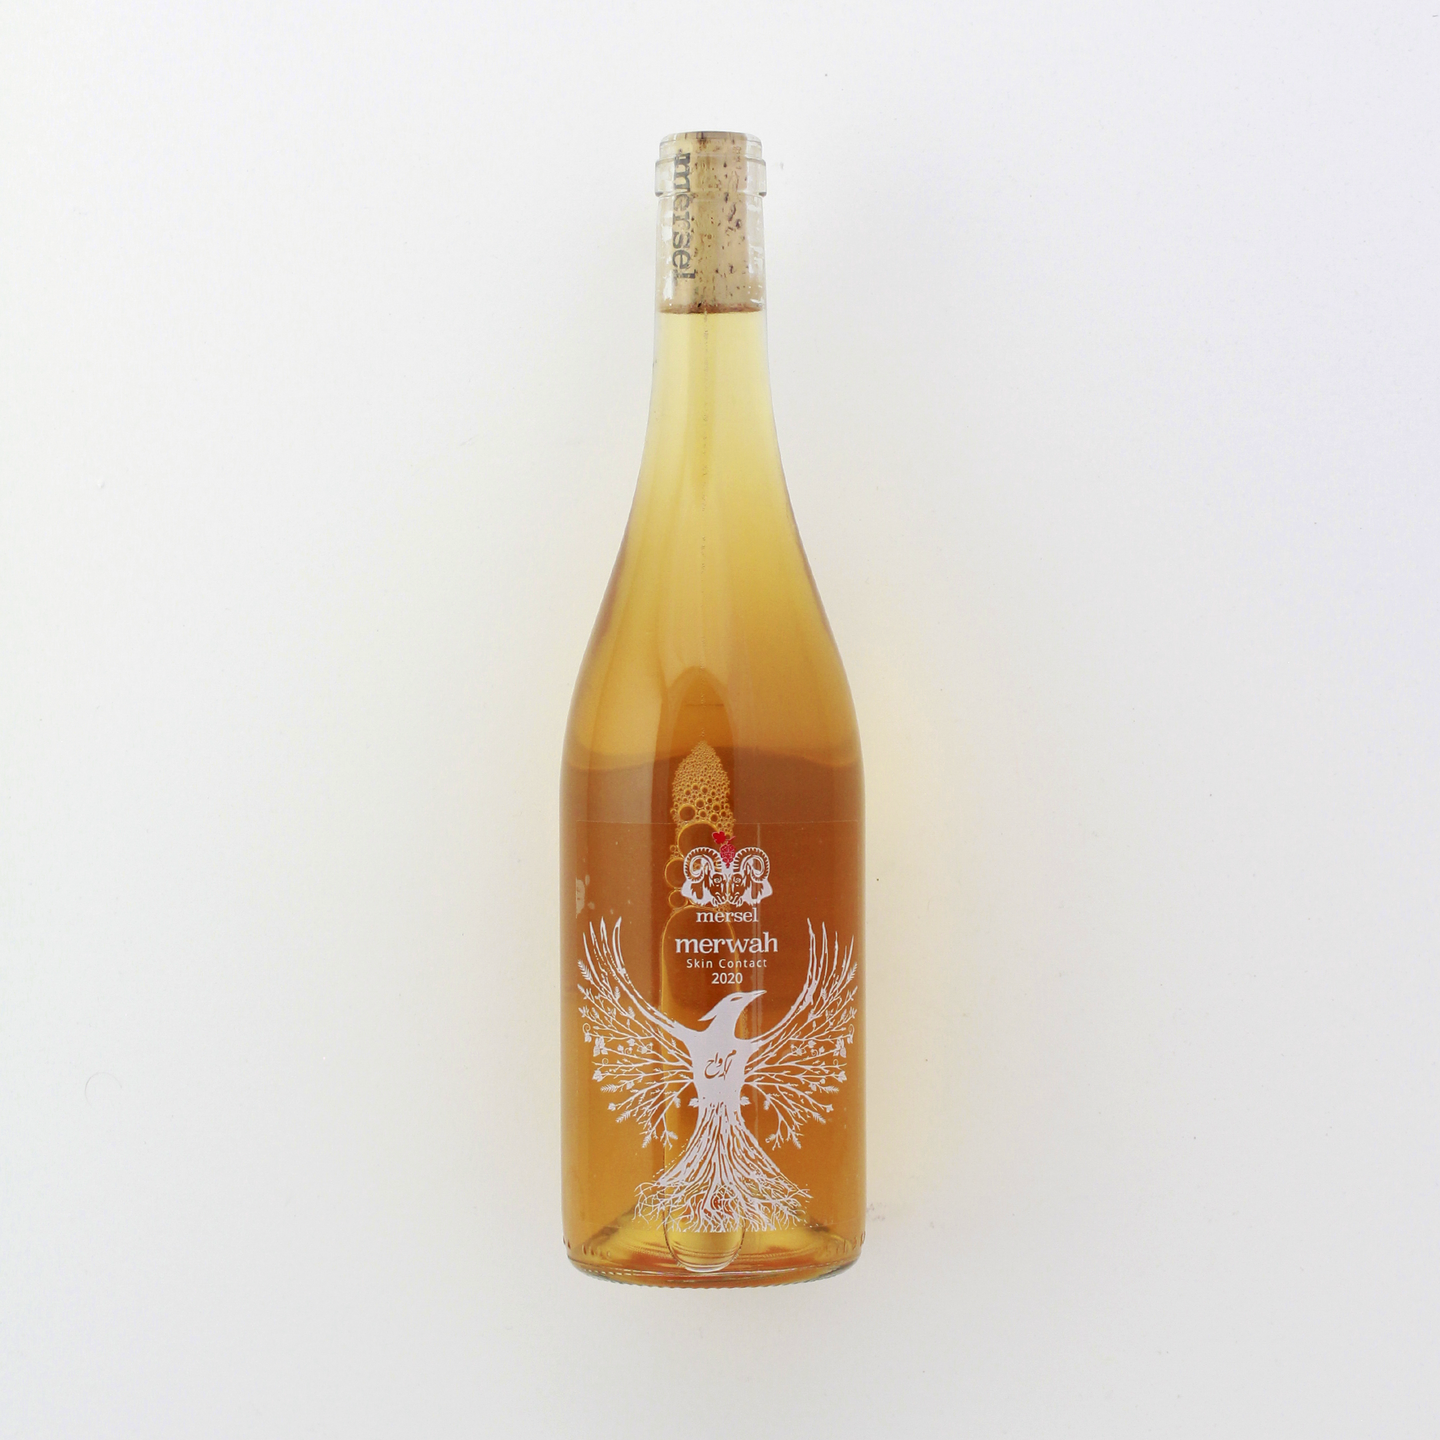 2020 Mersel 'Merwah' Skin Contact - NOTWASTED - Natural Wine Online Australia Delivery Sydney